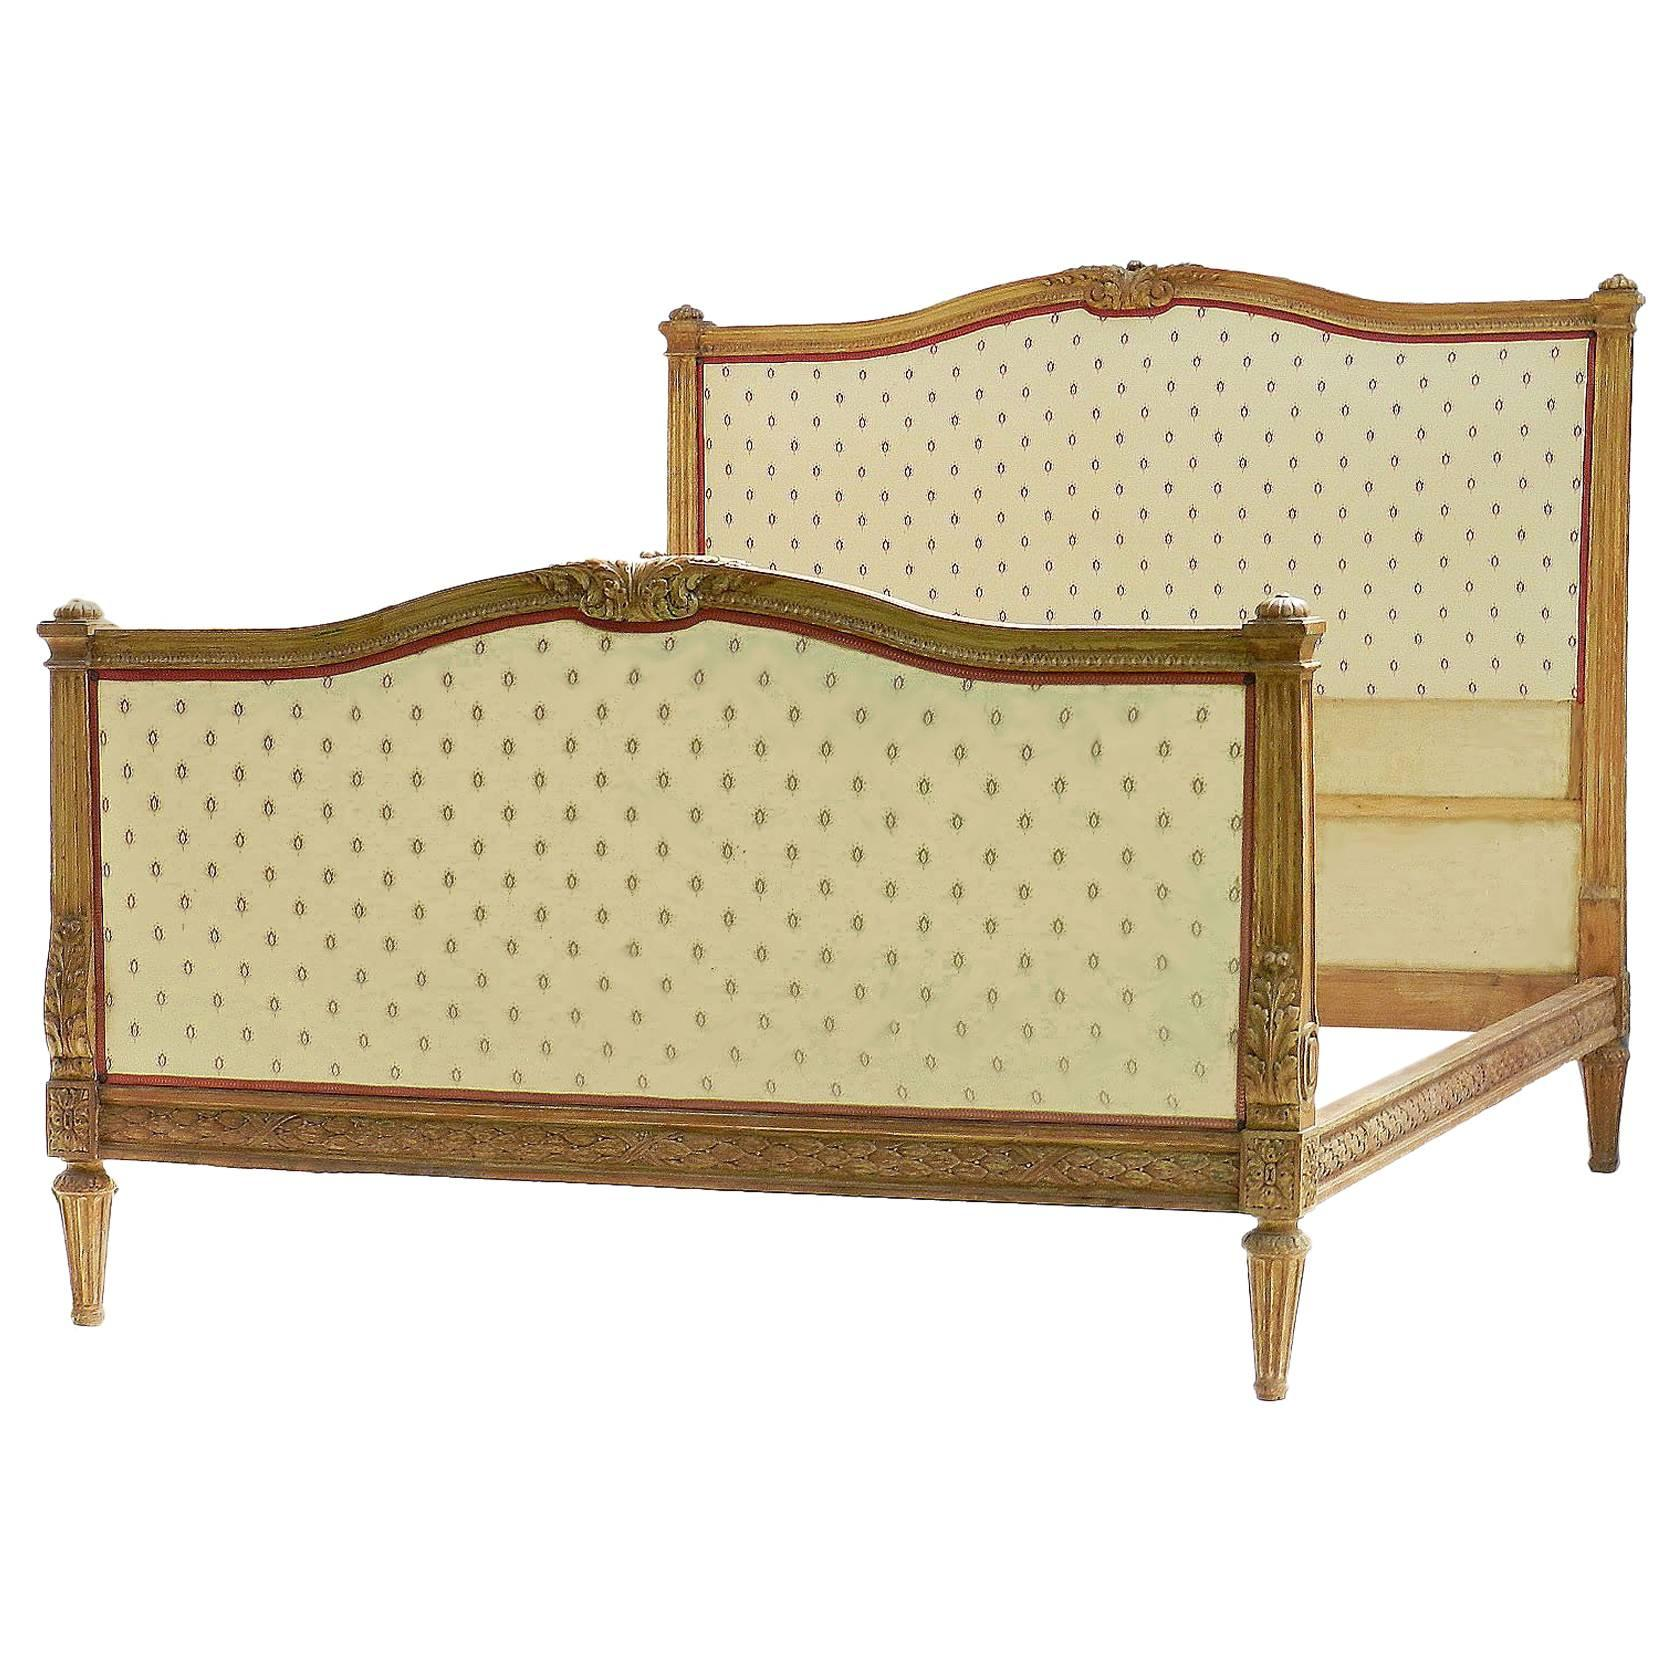 antique french bed us queen uk king size 19th century louis xvi rh 1stdibs com